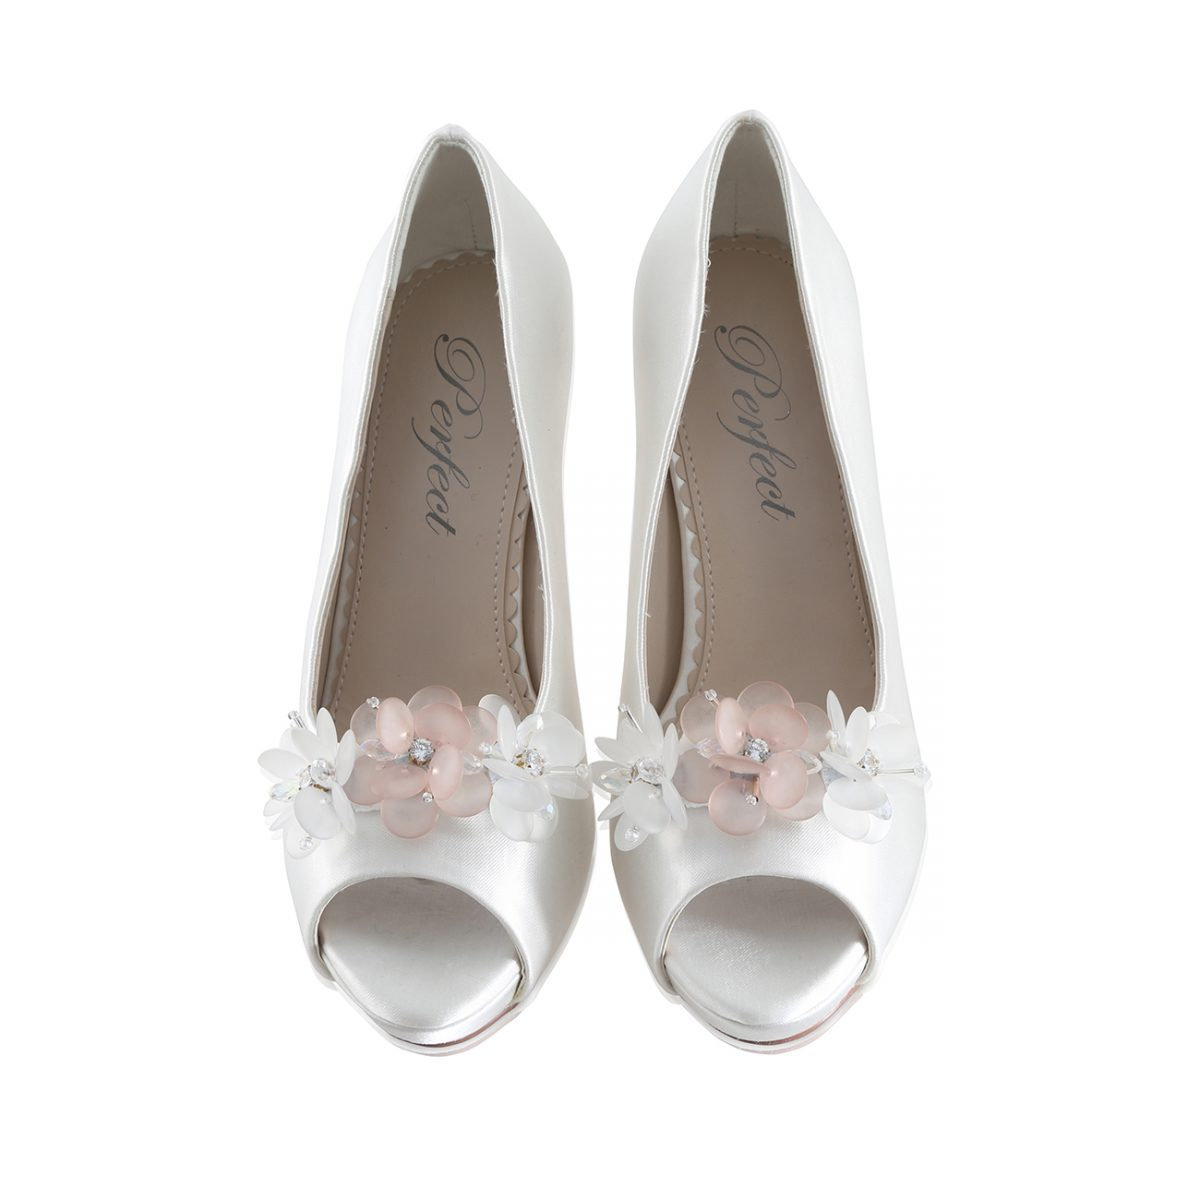 Perfect Bridal Damson Shoe Trim